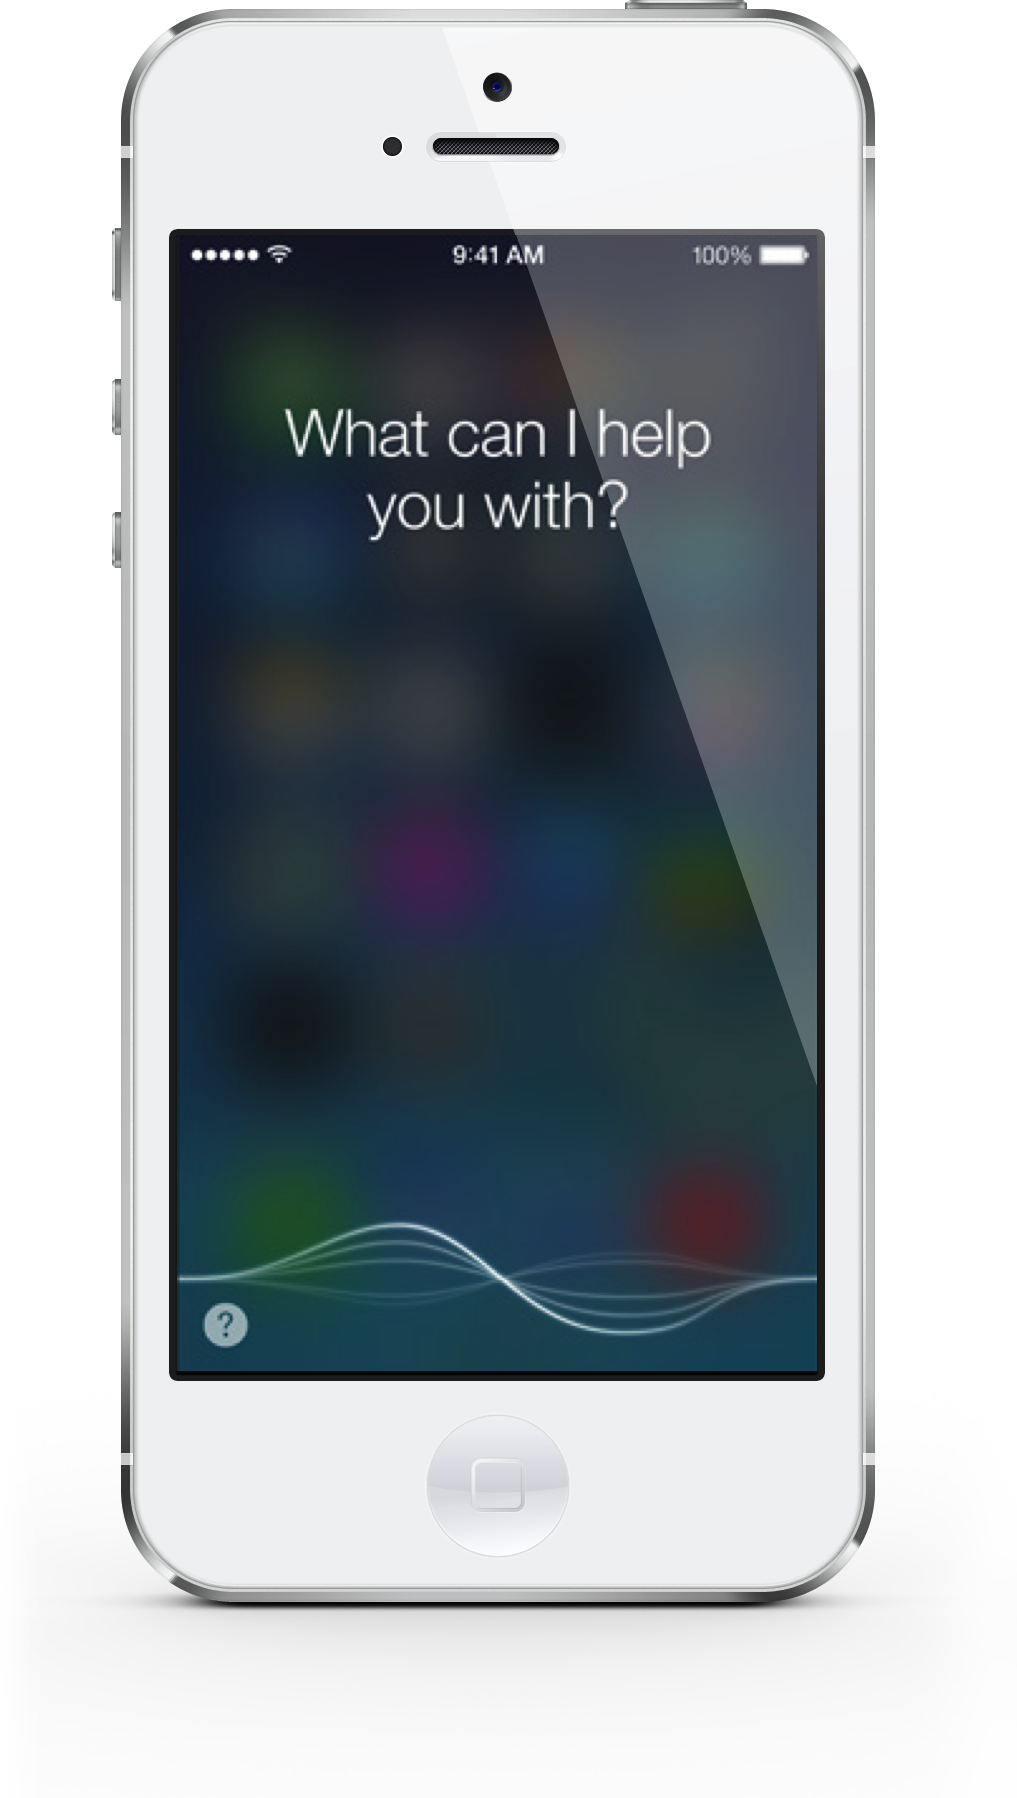 Iphone 6 Plus siri yükleme jailbreaksiz